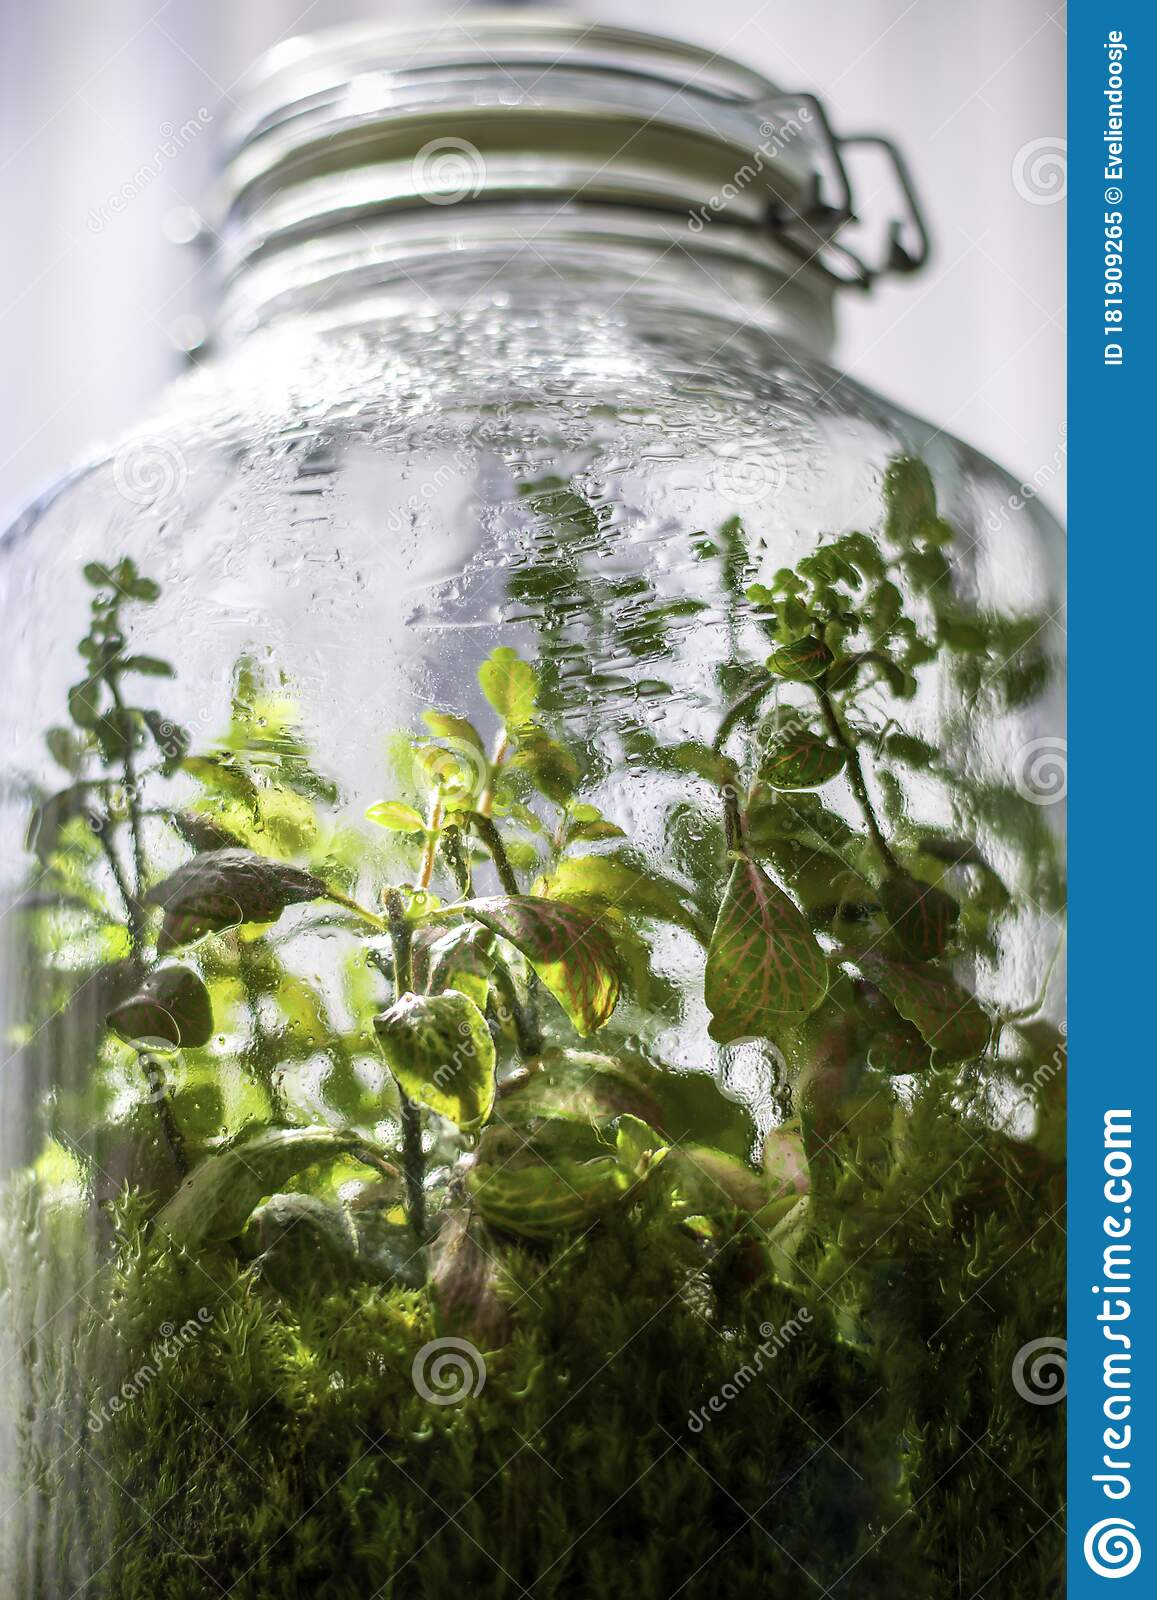 Plants In A Closed Glass Bottle Terrarium Jar Small Ecosystem Stock Image Image Of Enclosed Condensation 181909265